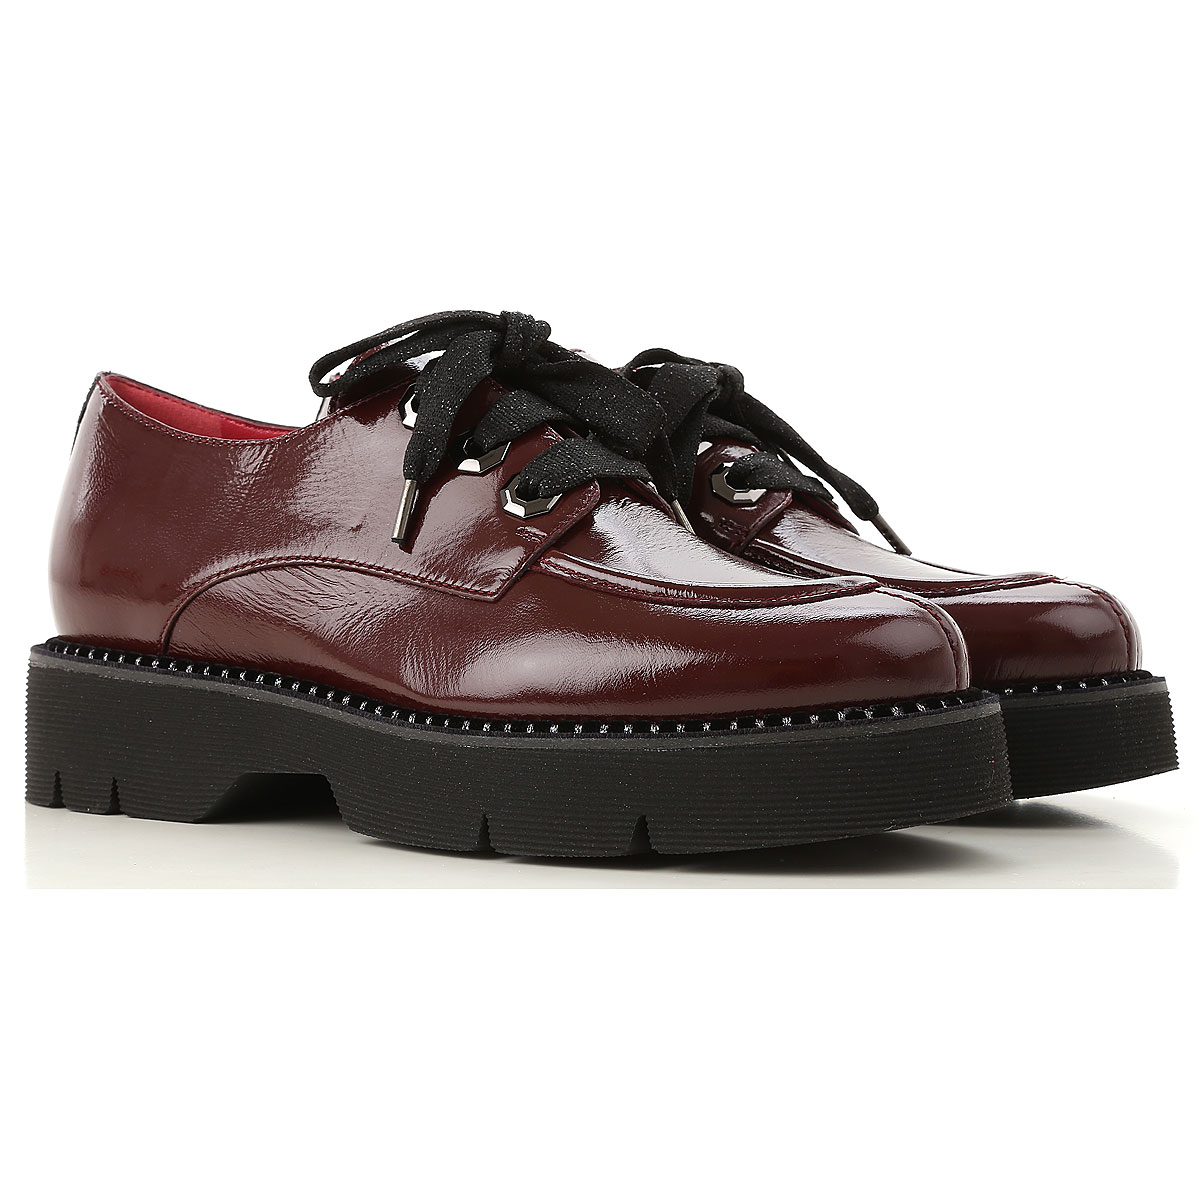 Image of 181 Lace Up Shoes for Men Oxfords, Derbies and Brogues, Aubergine, Patent Leather, 2017, 10 8 8.5 9